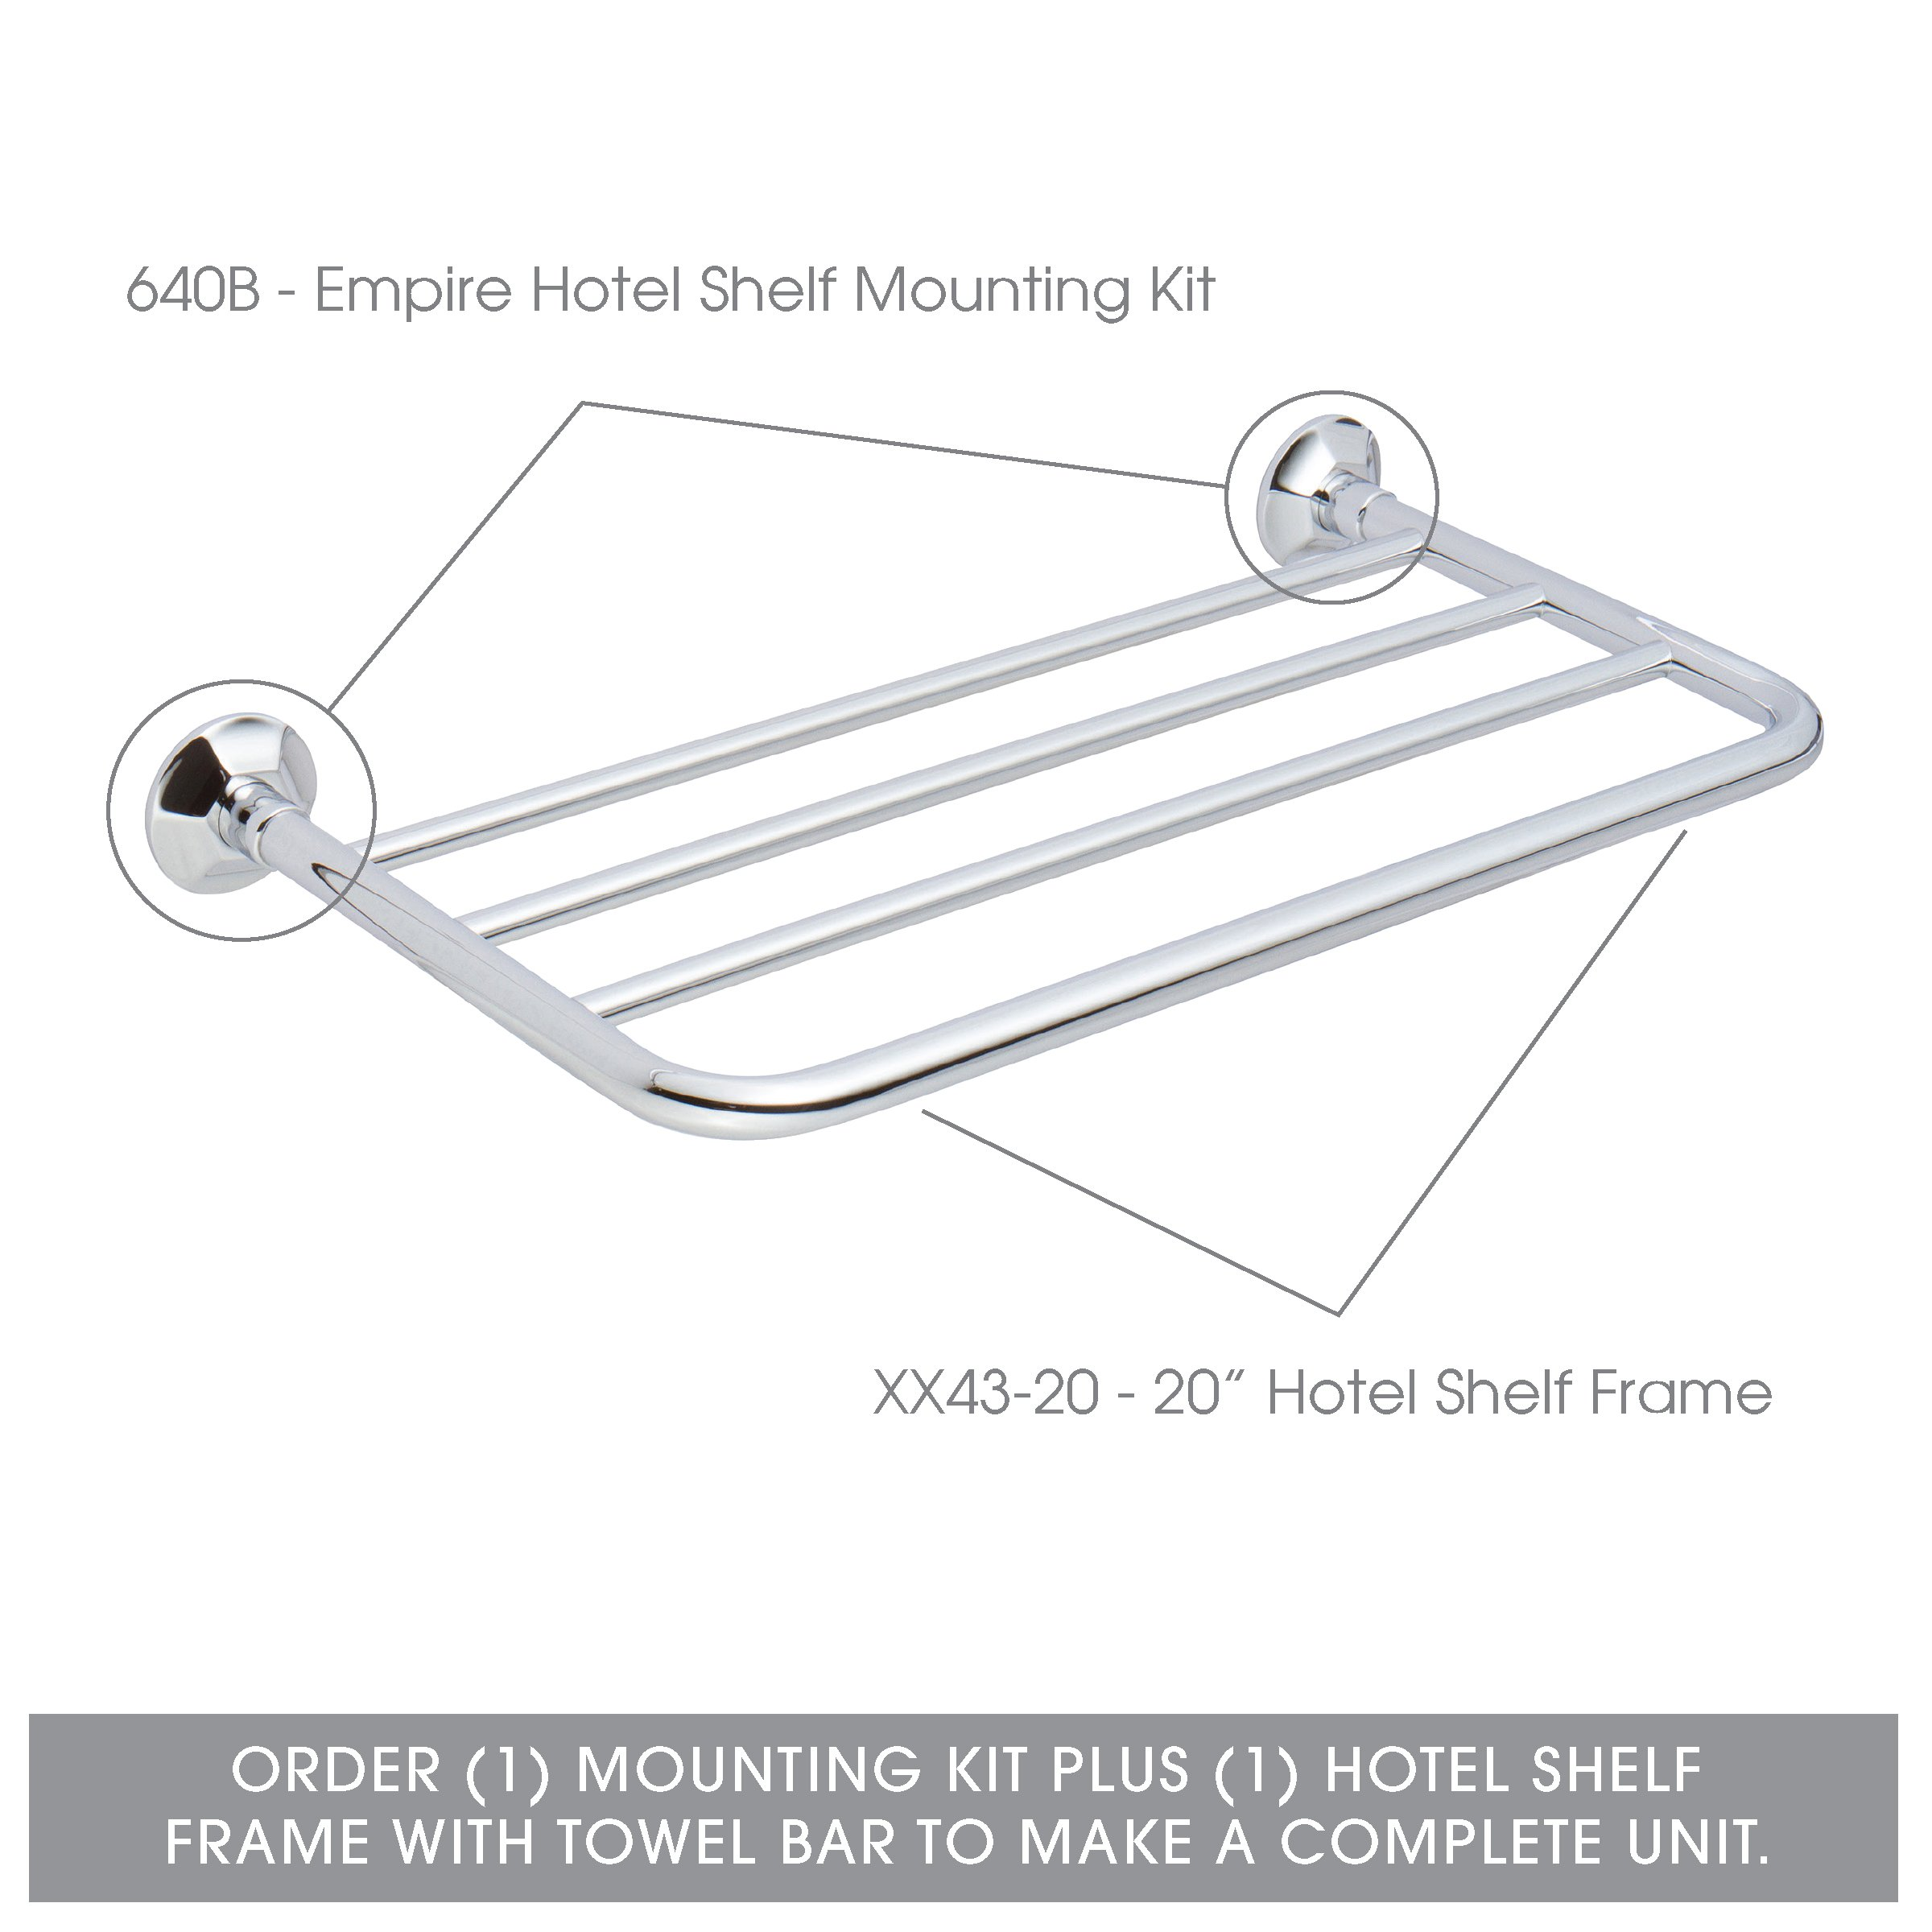 Ginger Empire Hotel Shelf Mounting Kit - 640B/PC - Wall Mounted Towel Rack Trim Brackets - Polished Chrome - Mounting Kit Only by Ginger (Image #5)